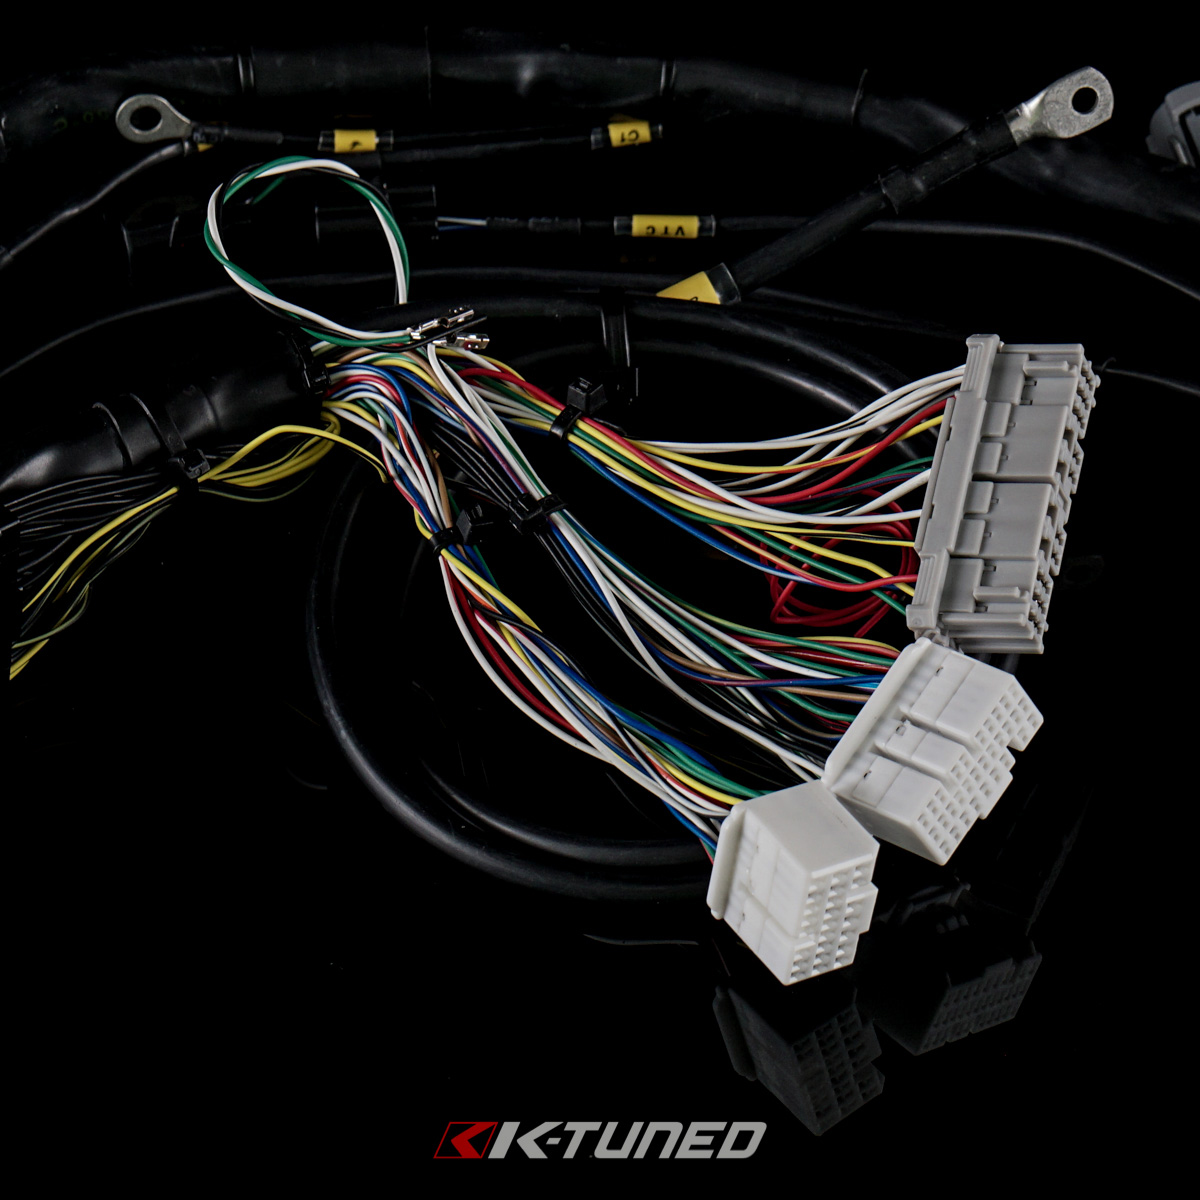 KTH 204 ENG_020 k series tucked engine harness rsx tucked wire harness at couponss.co